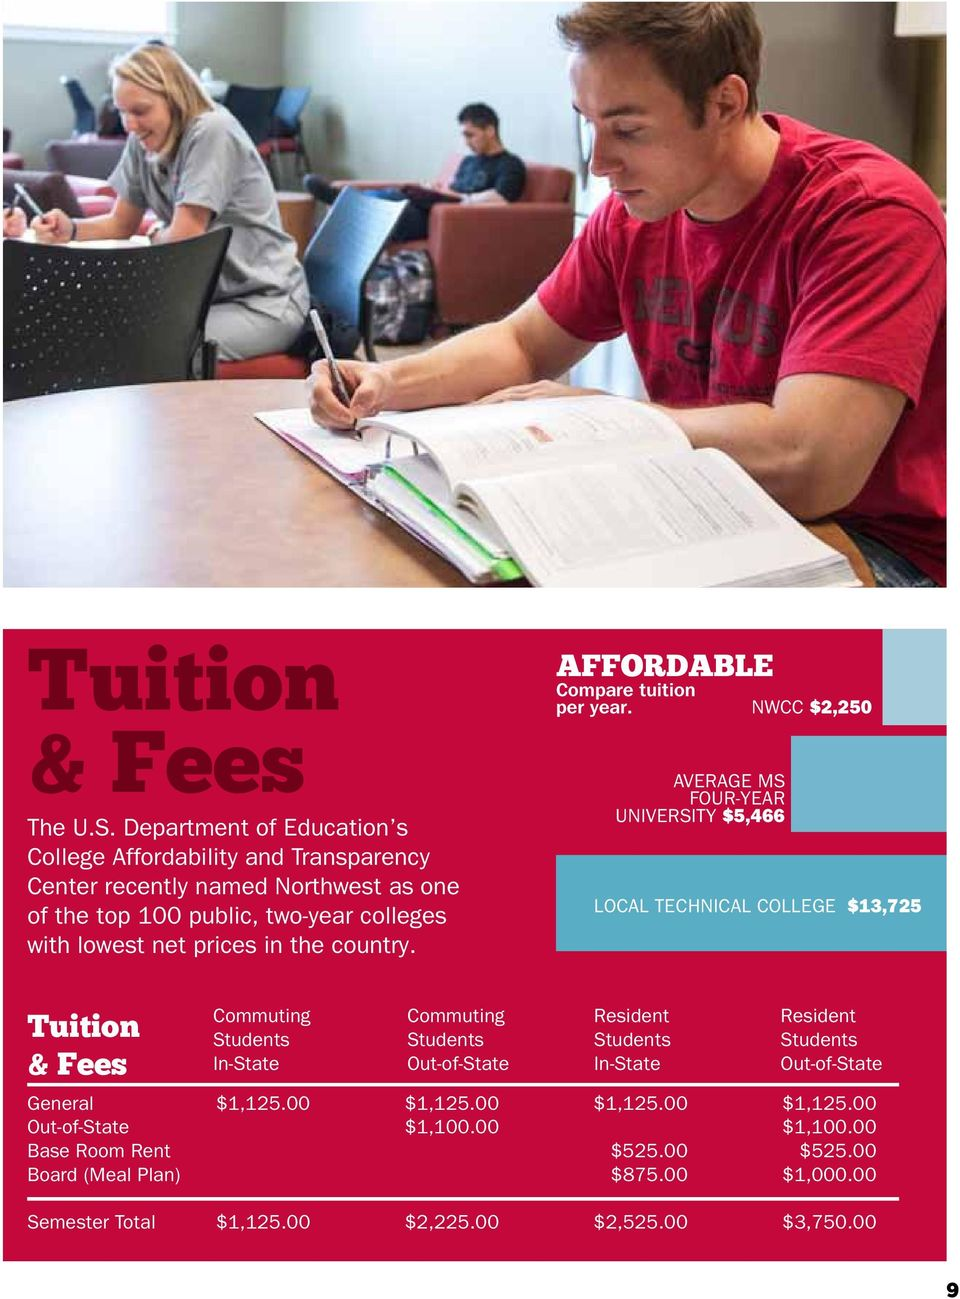 prices in the country. affordable Compare tuition per year.